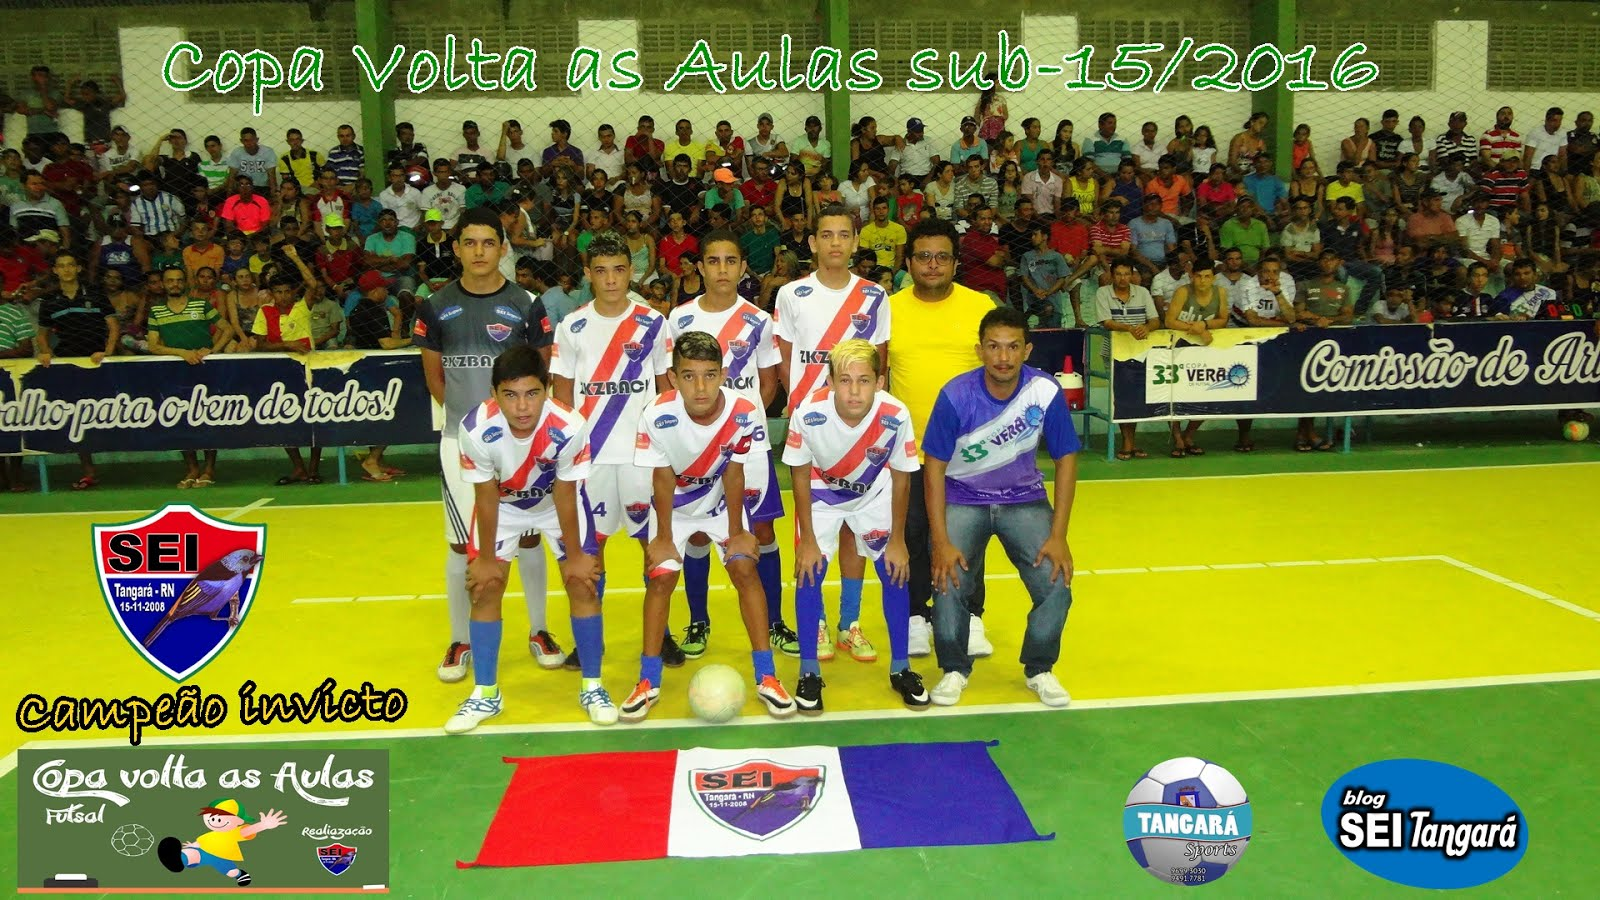 IV COPA VOLTA AS AULAS 2016